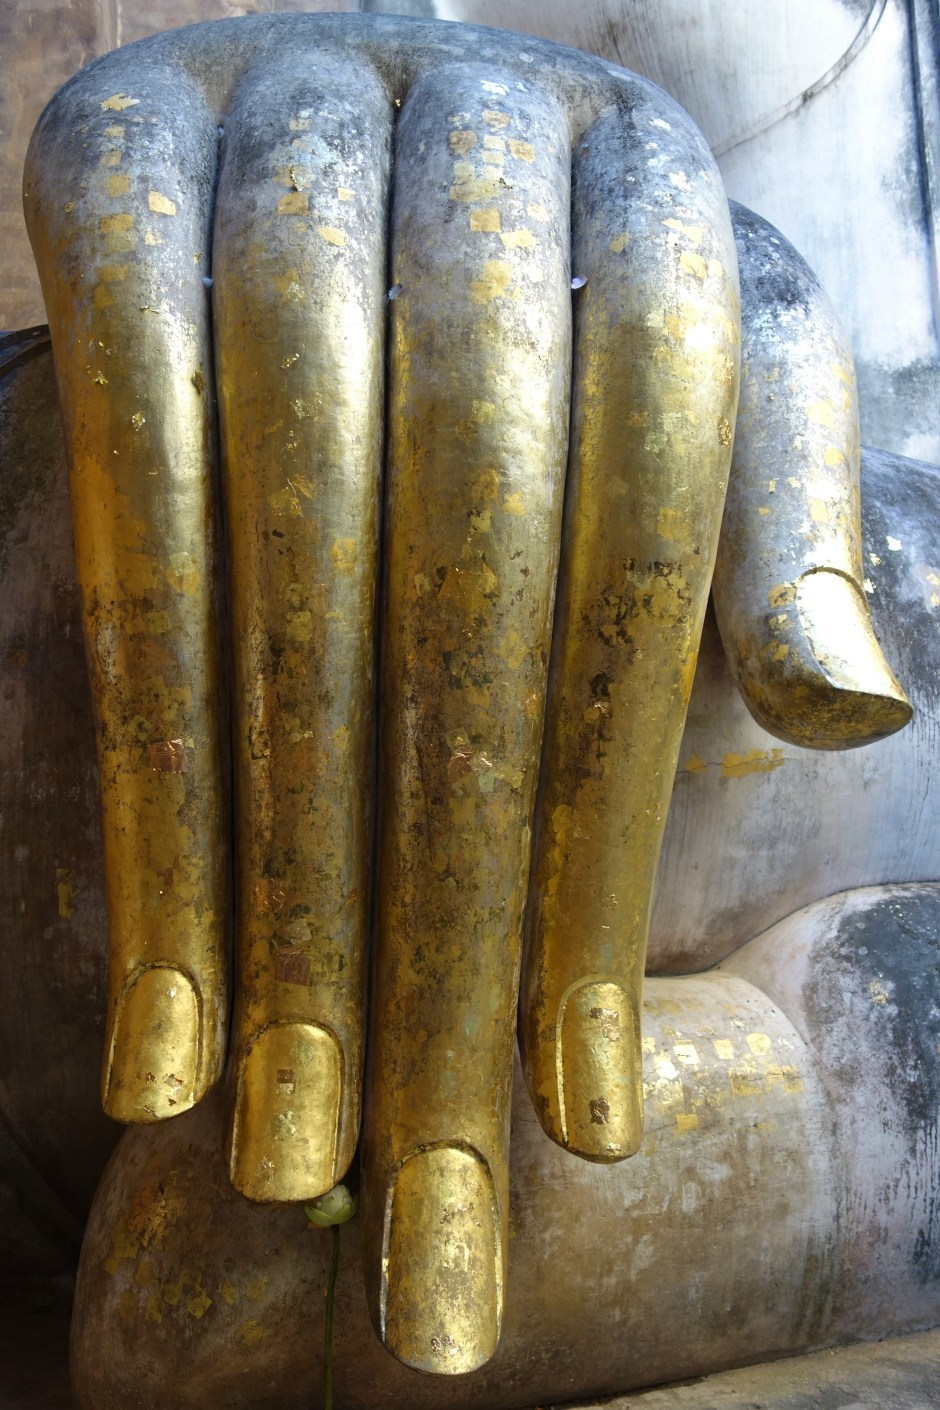 The famous Buddha hand